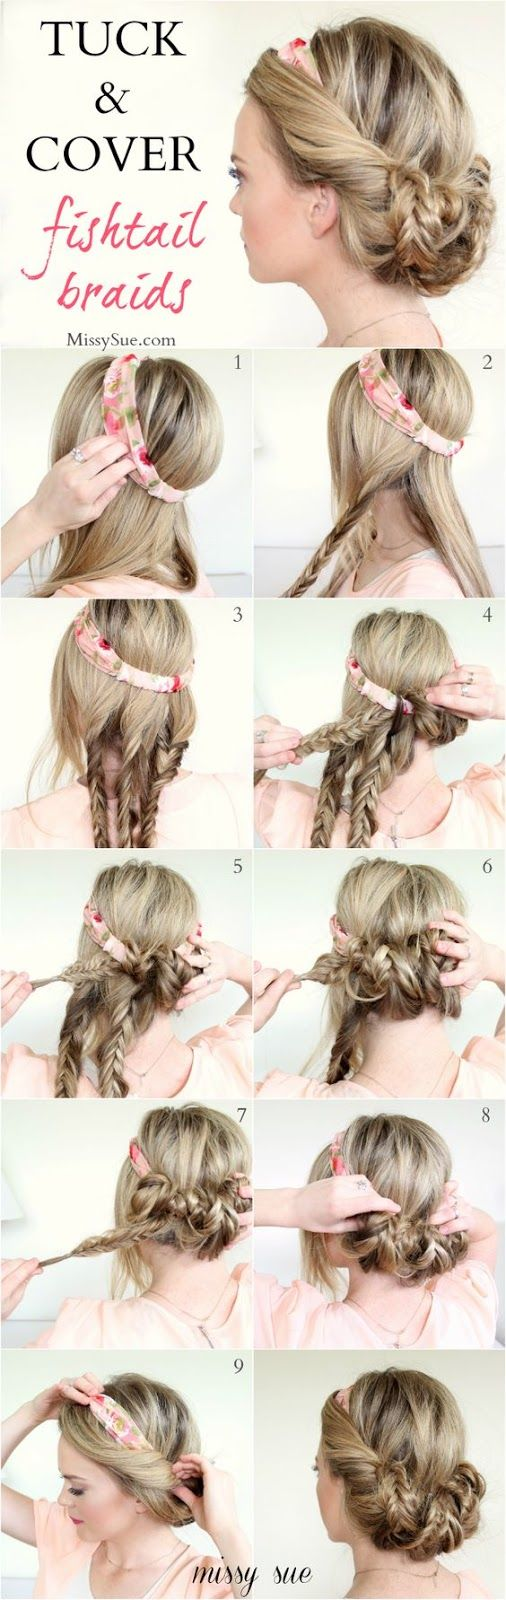 DIY Tuck Cover Fishtail Braids | Hairstyles Trending